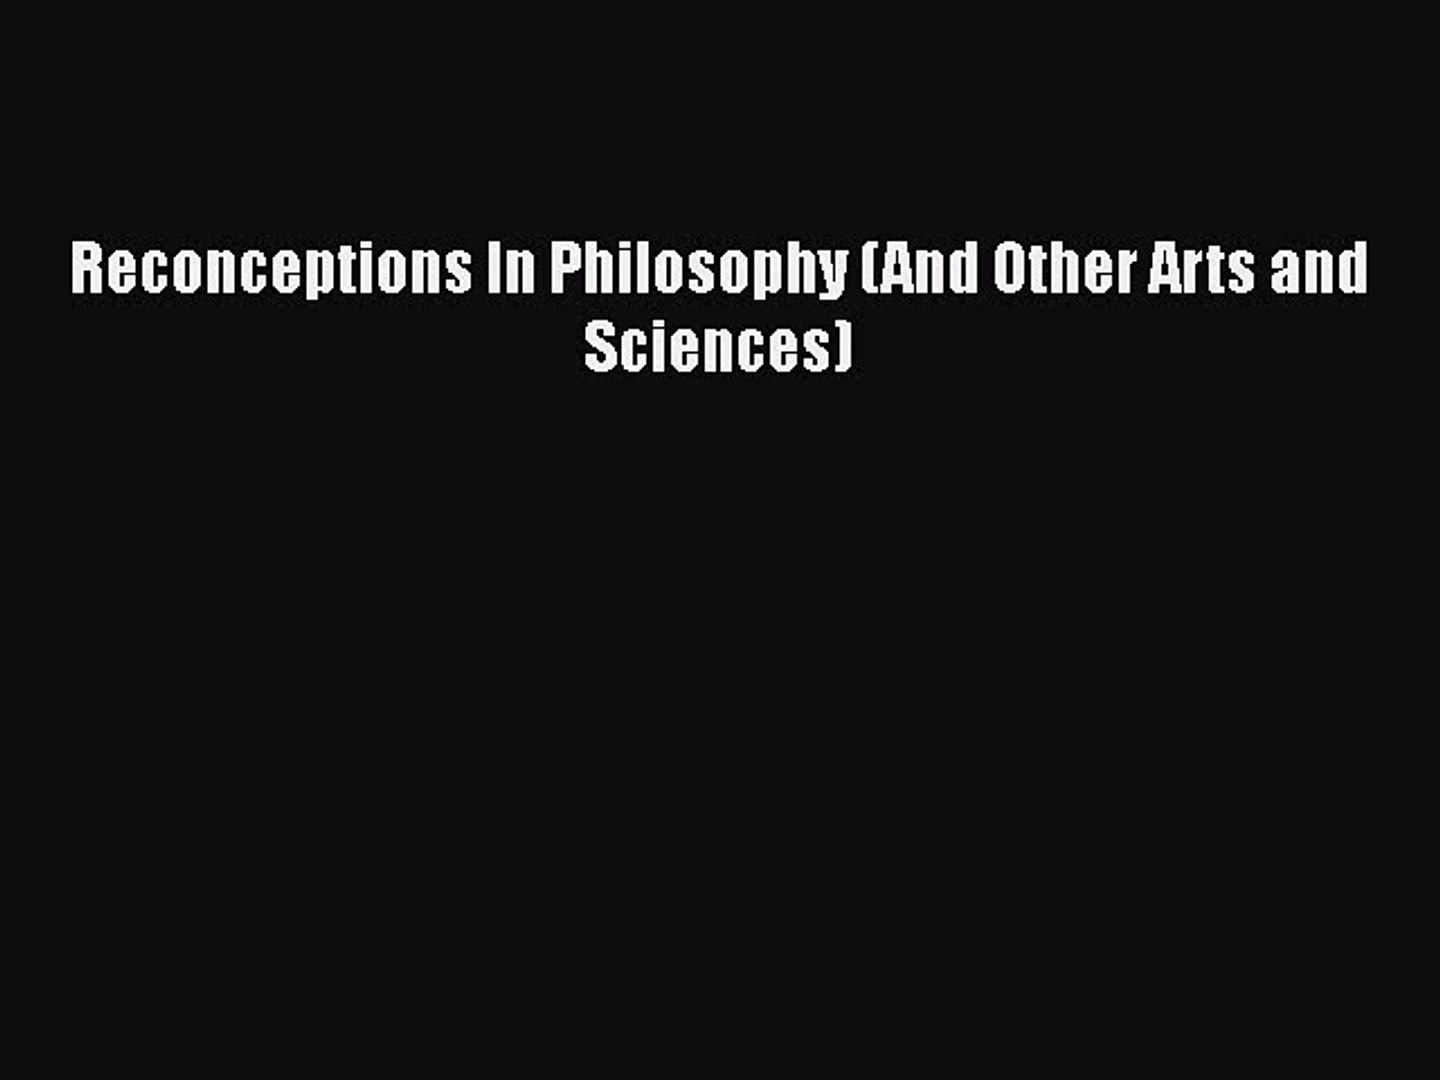 Reconceptions in Philosophy and Other Arts and Sciences